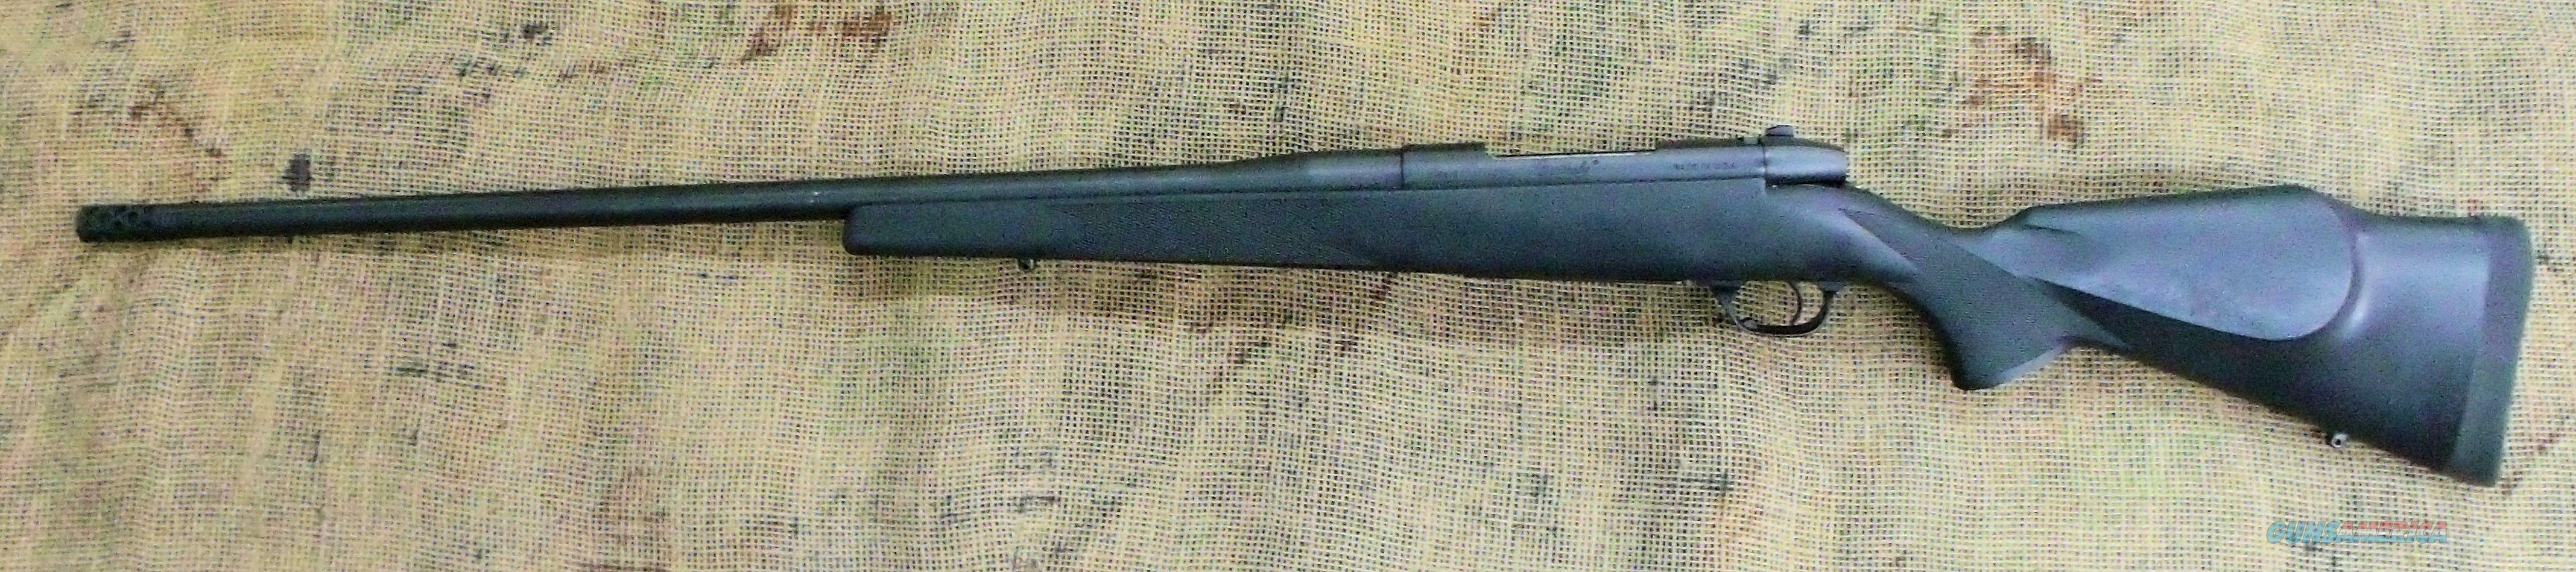 WEATHERBY MKV Rifle, 30-.378 Cal.  Guns > Rifles > Weatherby Rifles > Sporting